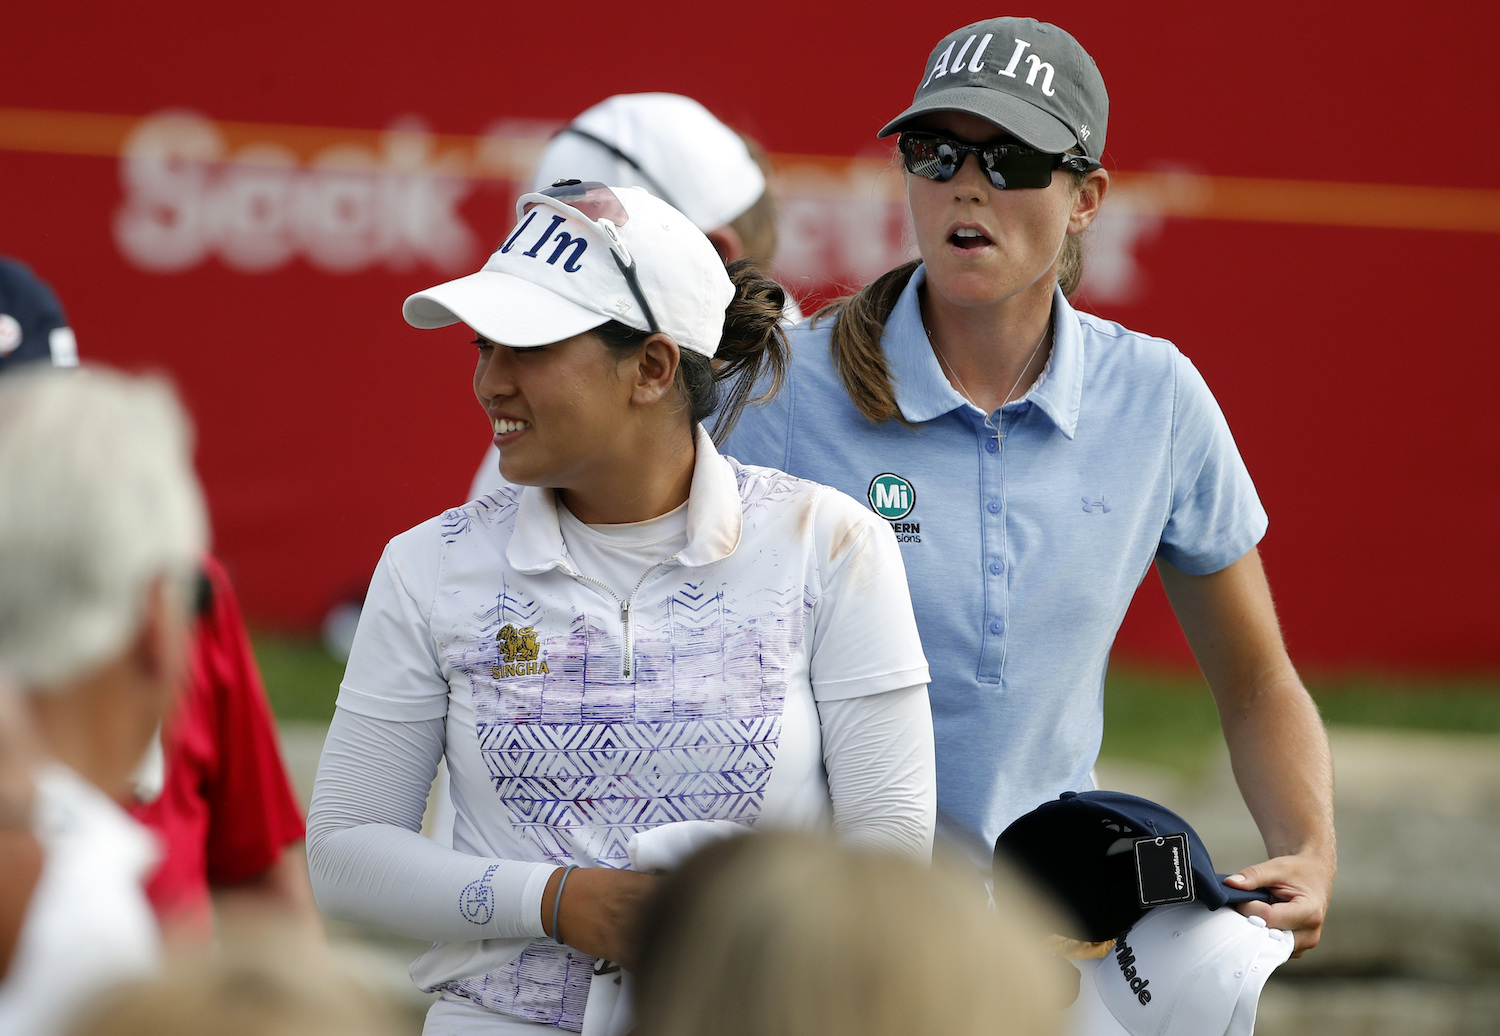 Jasmine Suwannapura (left) and teammate Cydney Clanton hand out caps to fans as they walk off the 18th tee during the third round of the Dow Great Lakes Bay Invitational golf tournament on Friday in Midland, Michigan. (AP Photo)